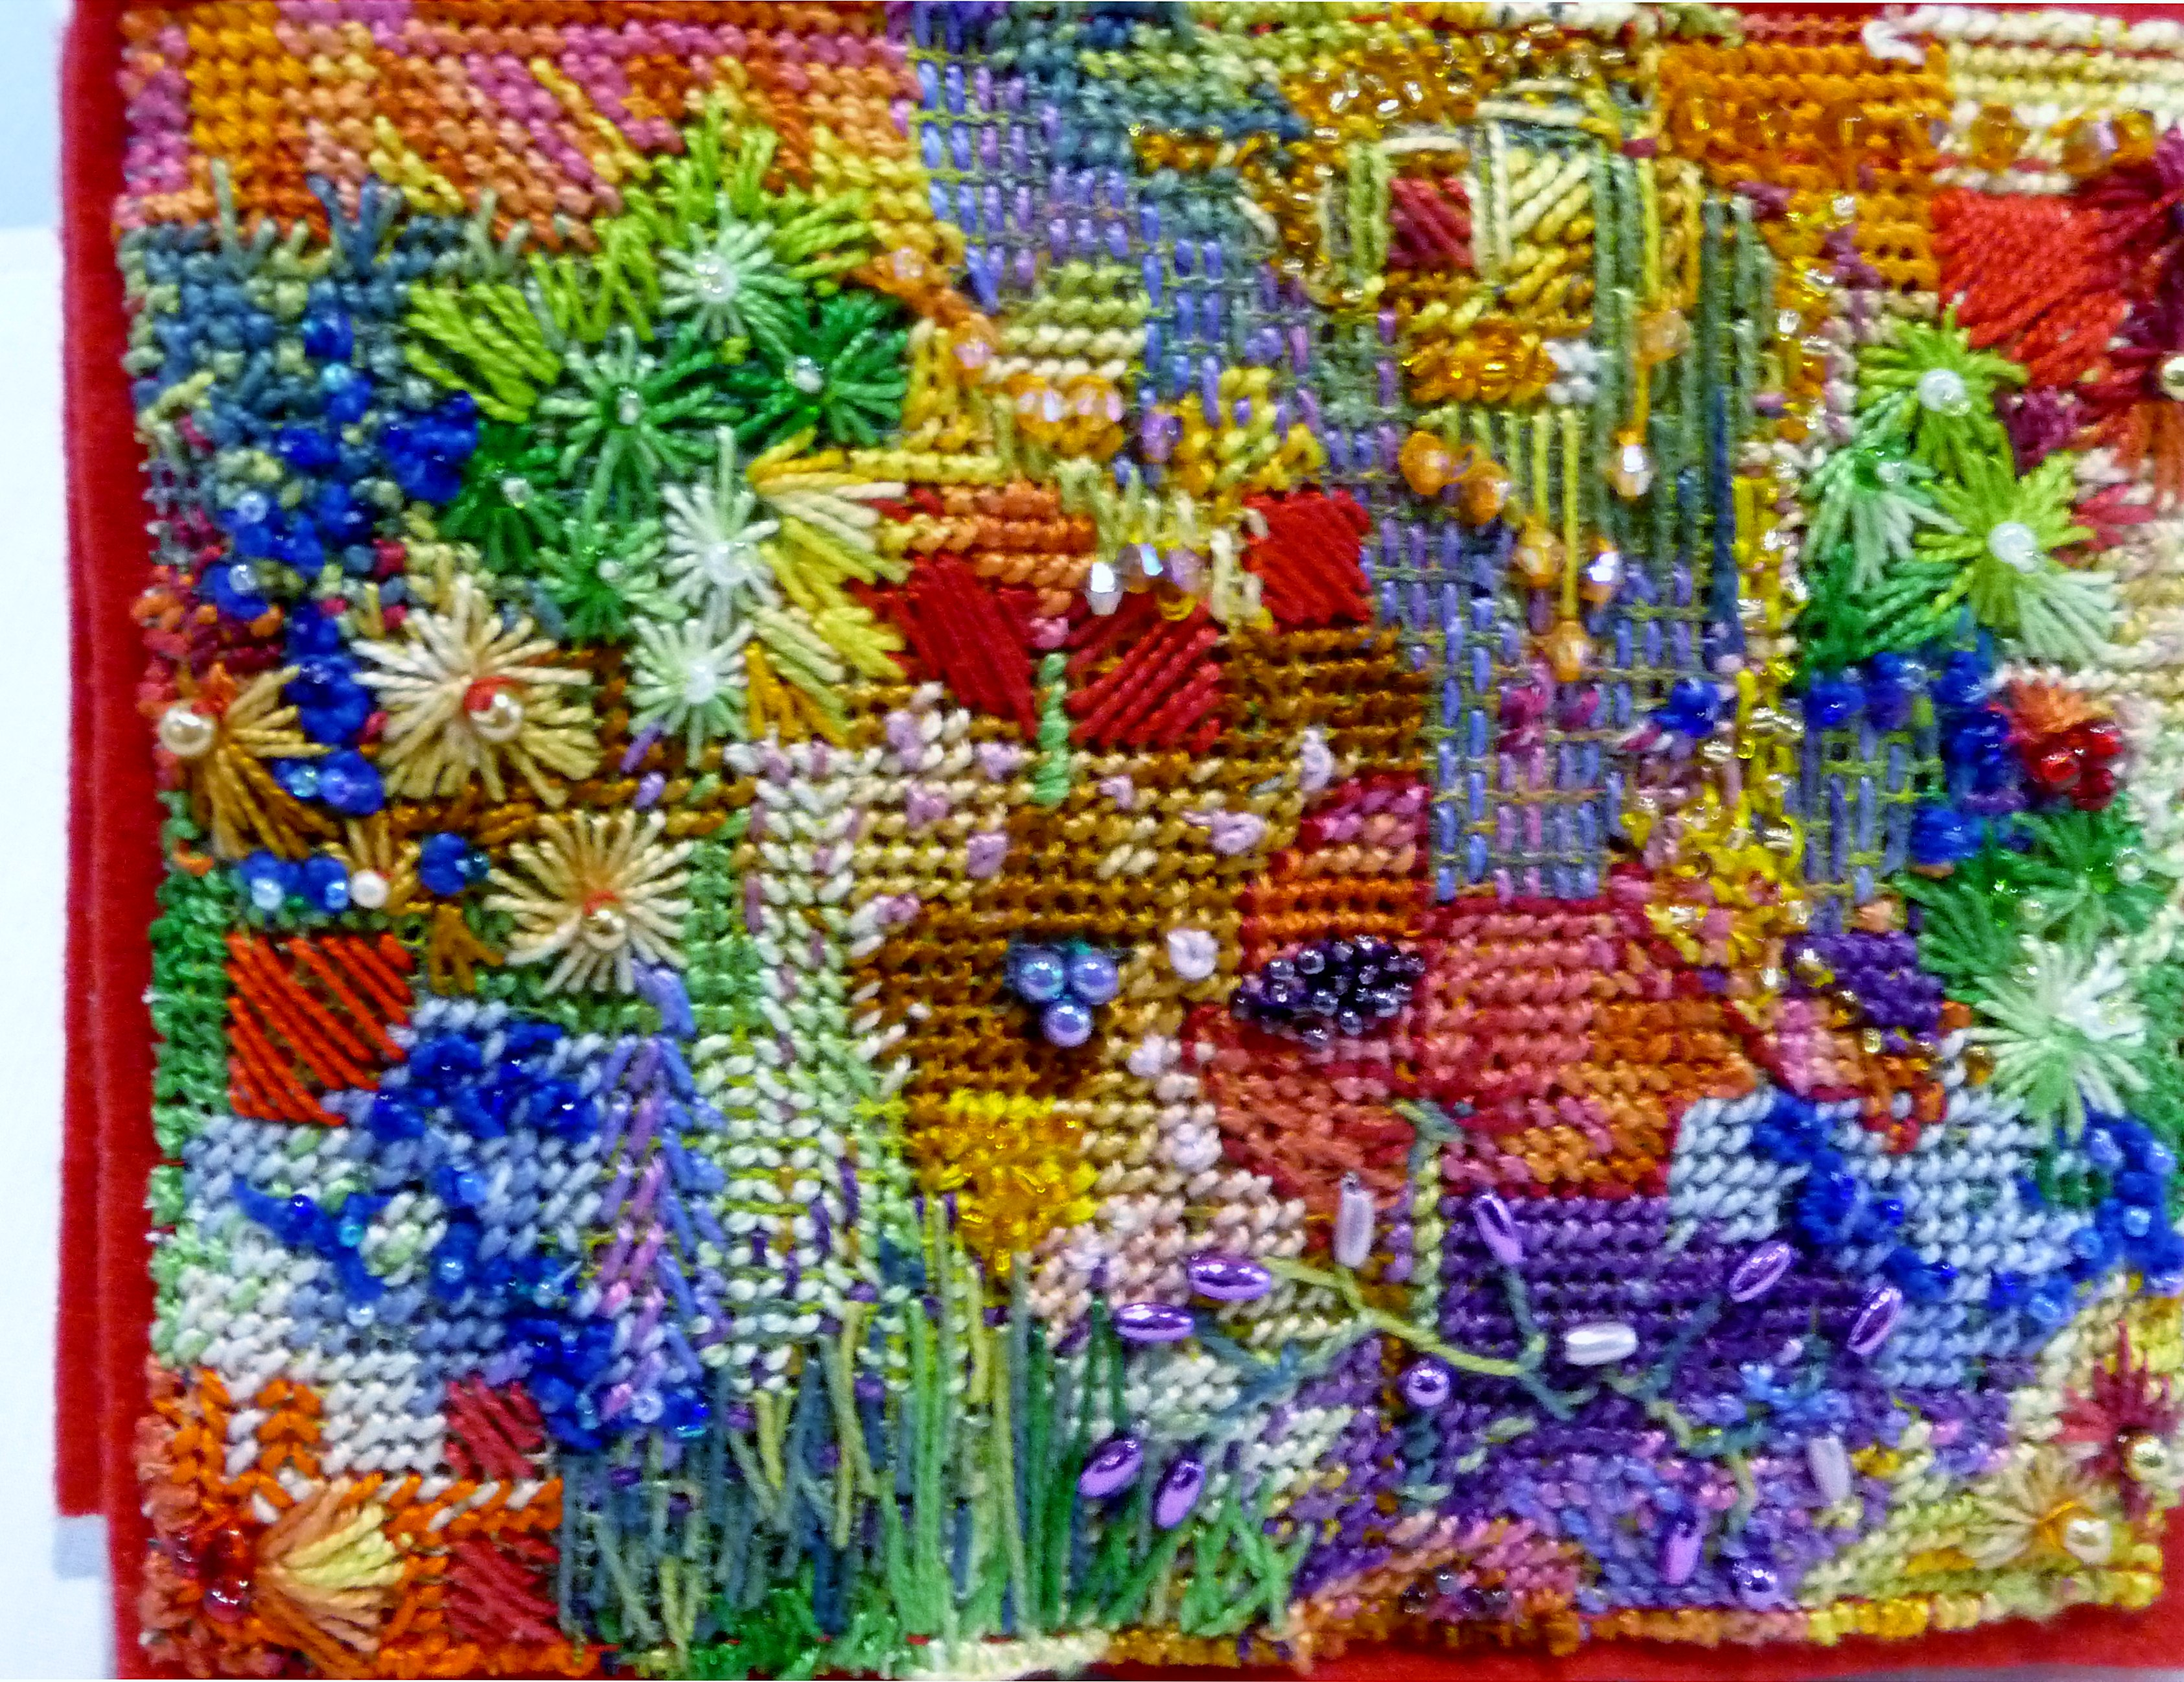 NEEDLECASE by Janette Nicholas, mixed media on counted thread canvas